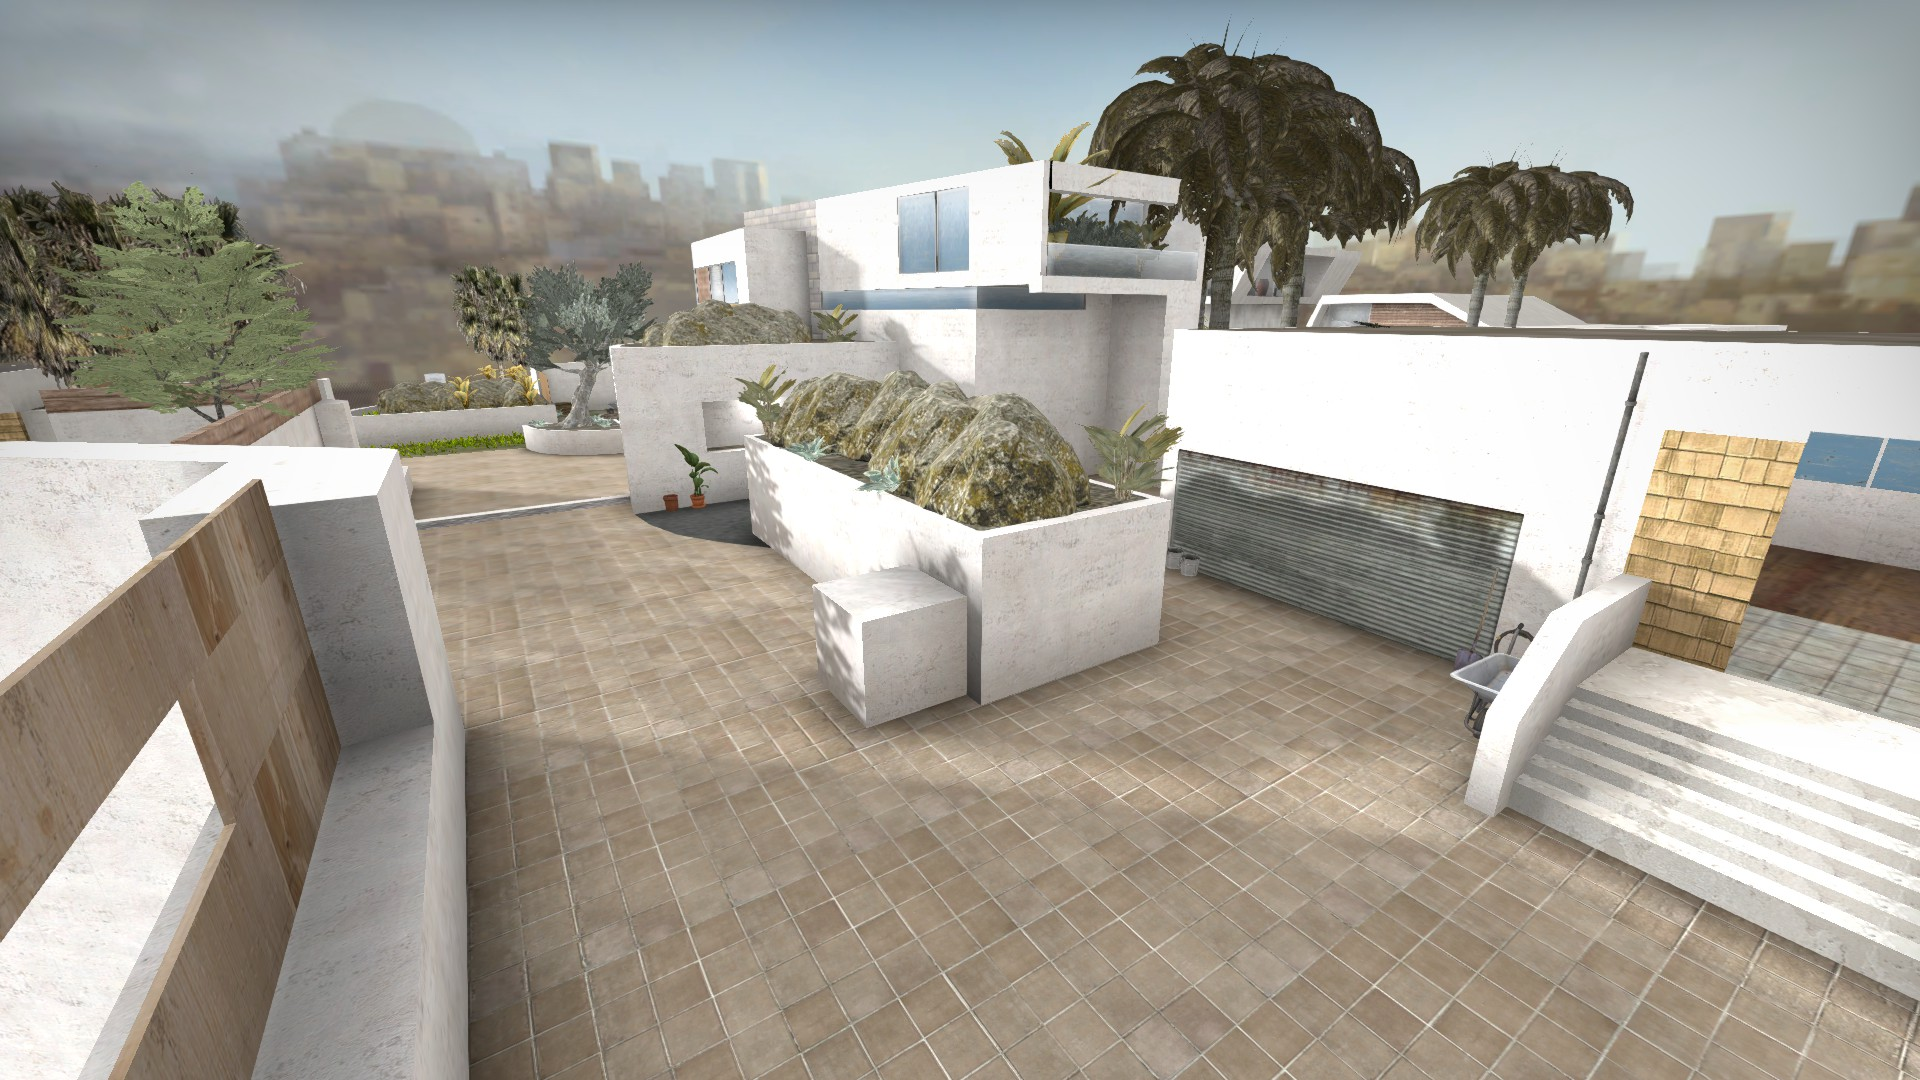 A CS:GO fan made a very accurate Black Ops 2 popular map